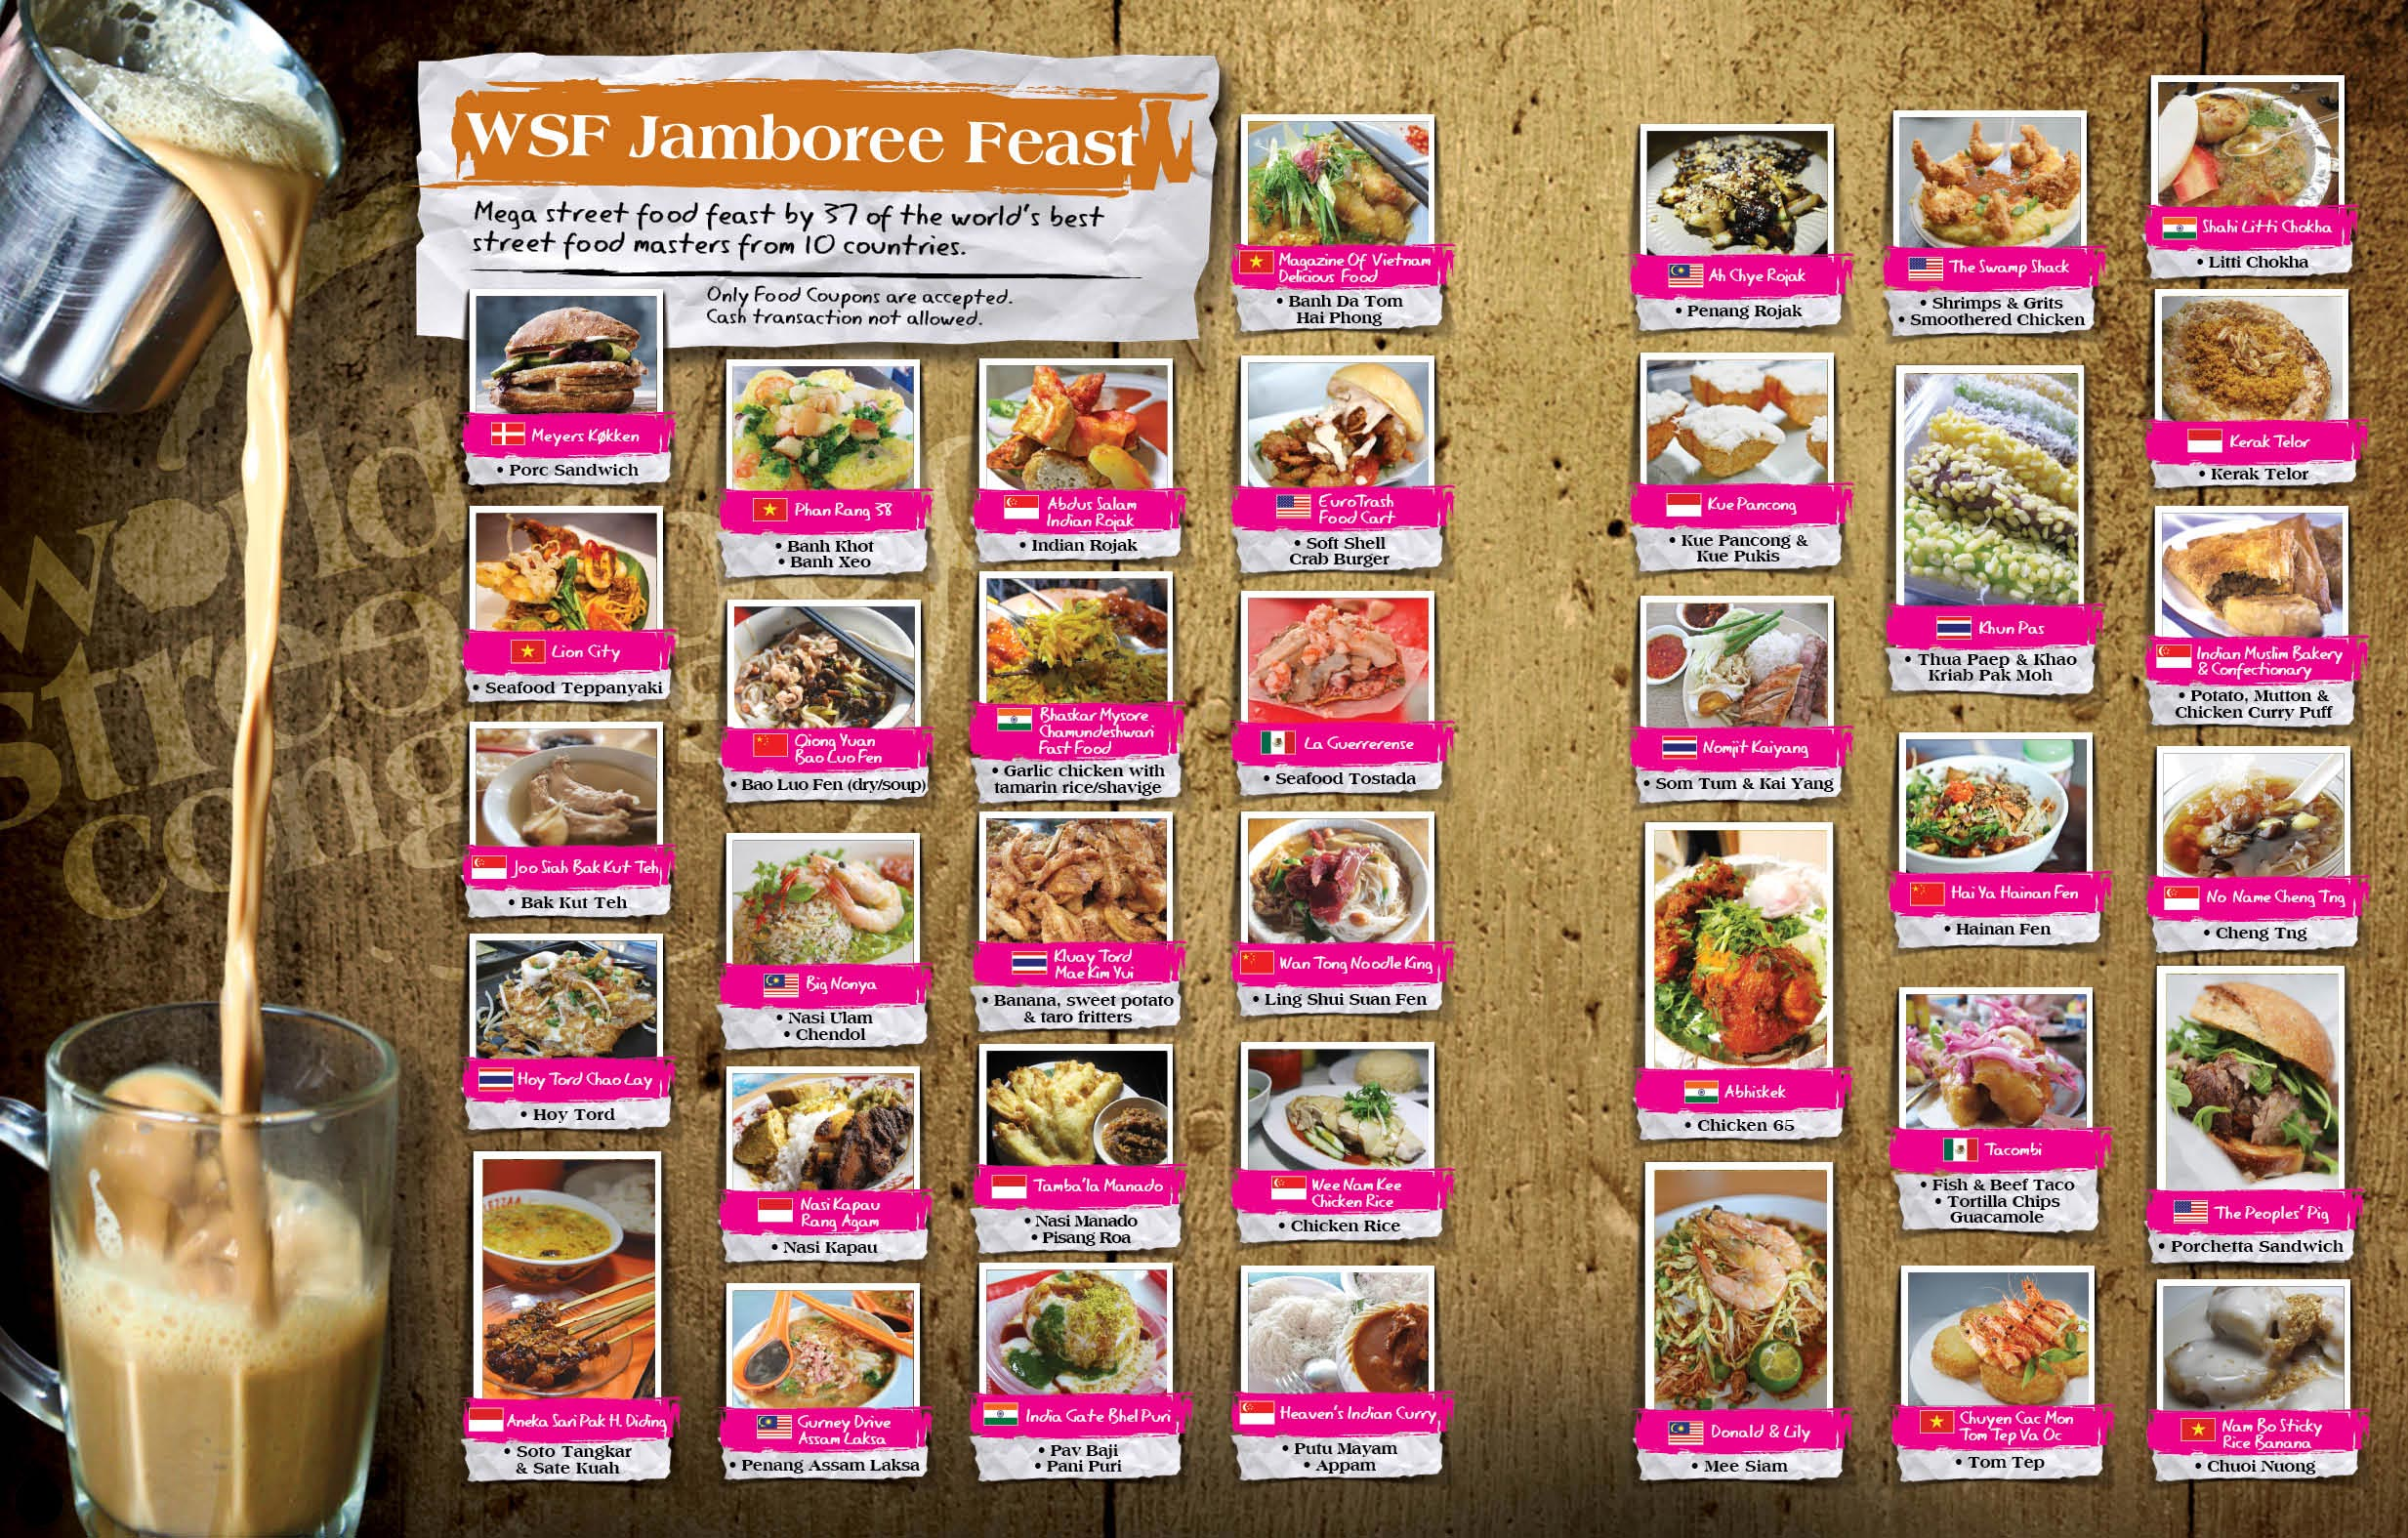 37 street-food stalls. 10 countries. Can't hardly wait.